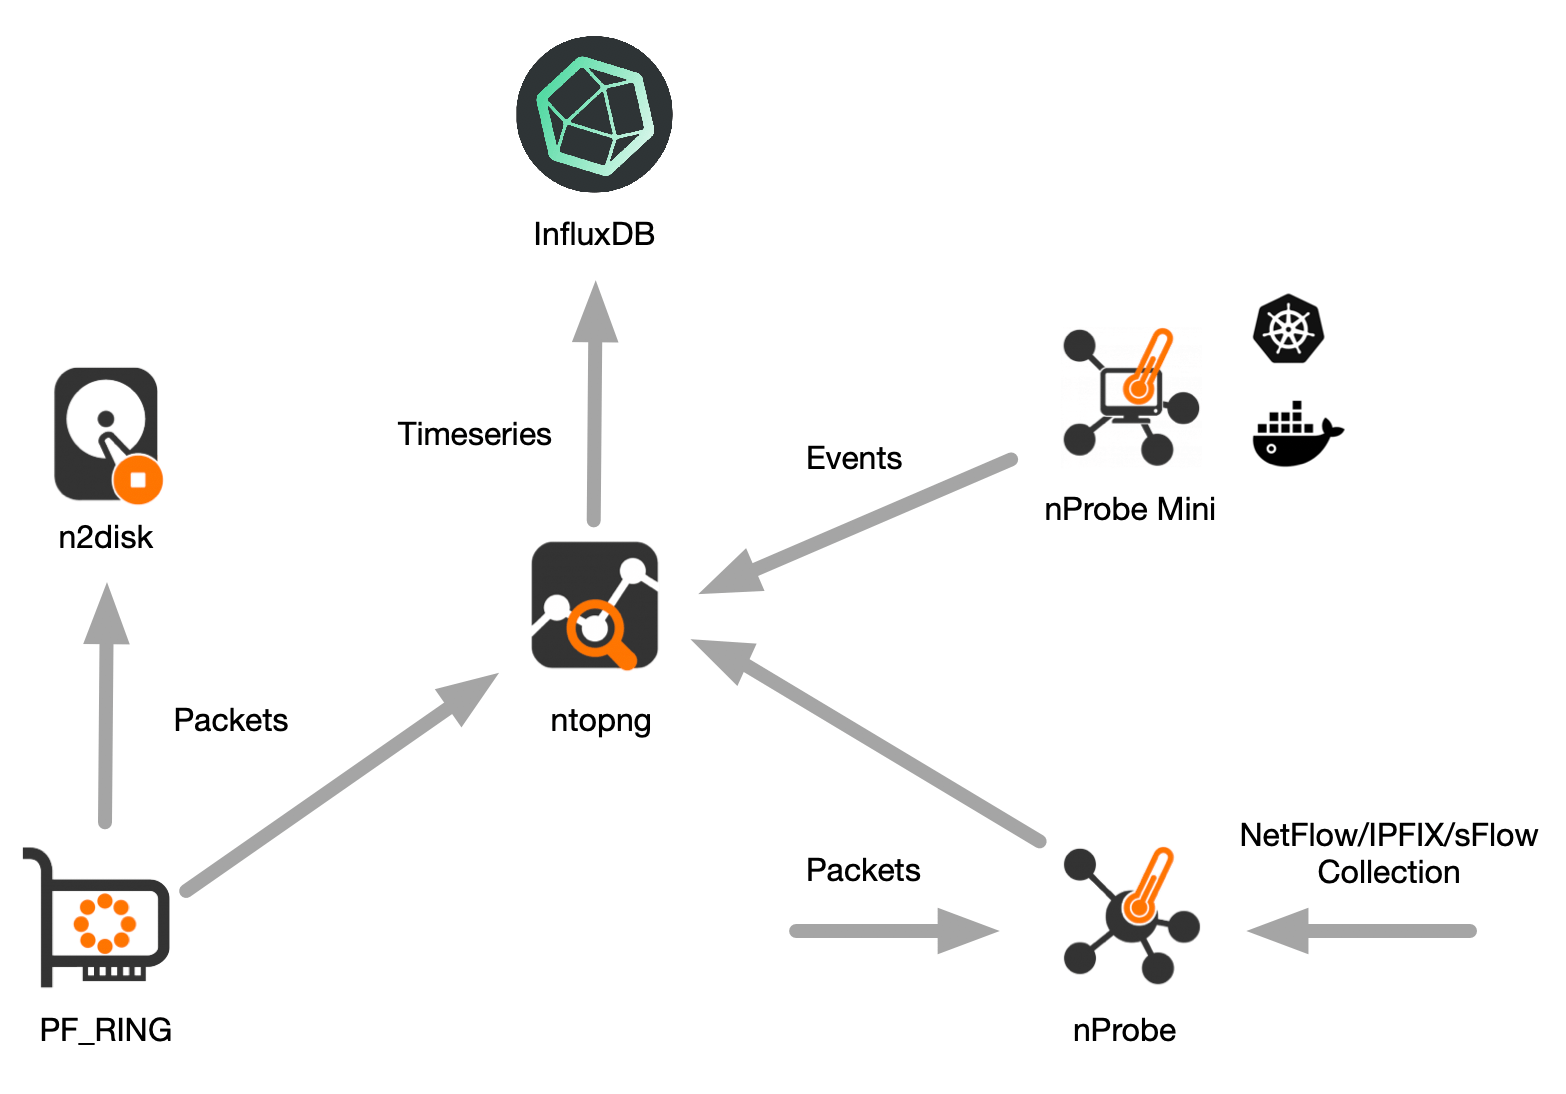 Containers and Networks Visibility with ntopng and InfluxDB